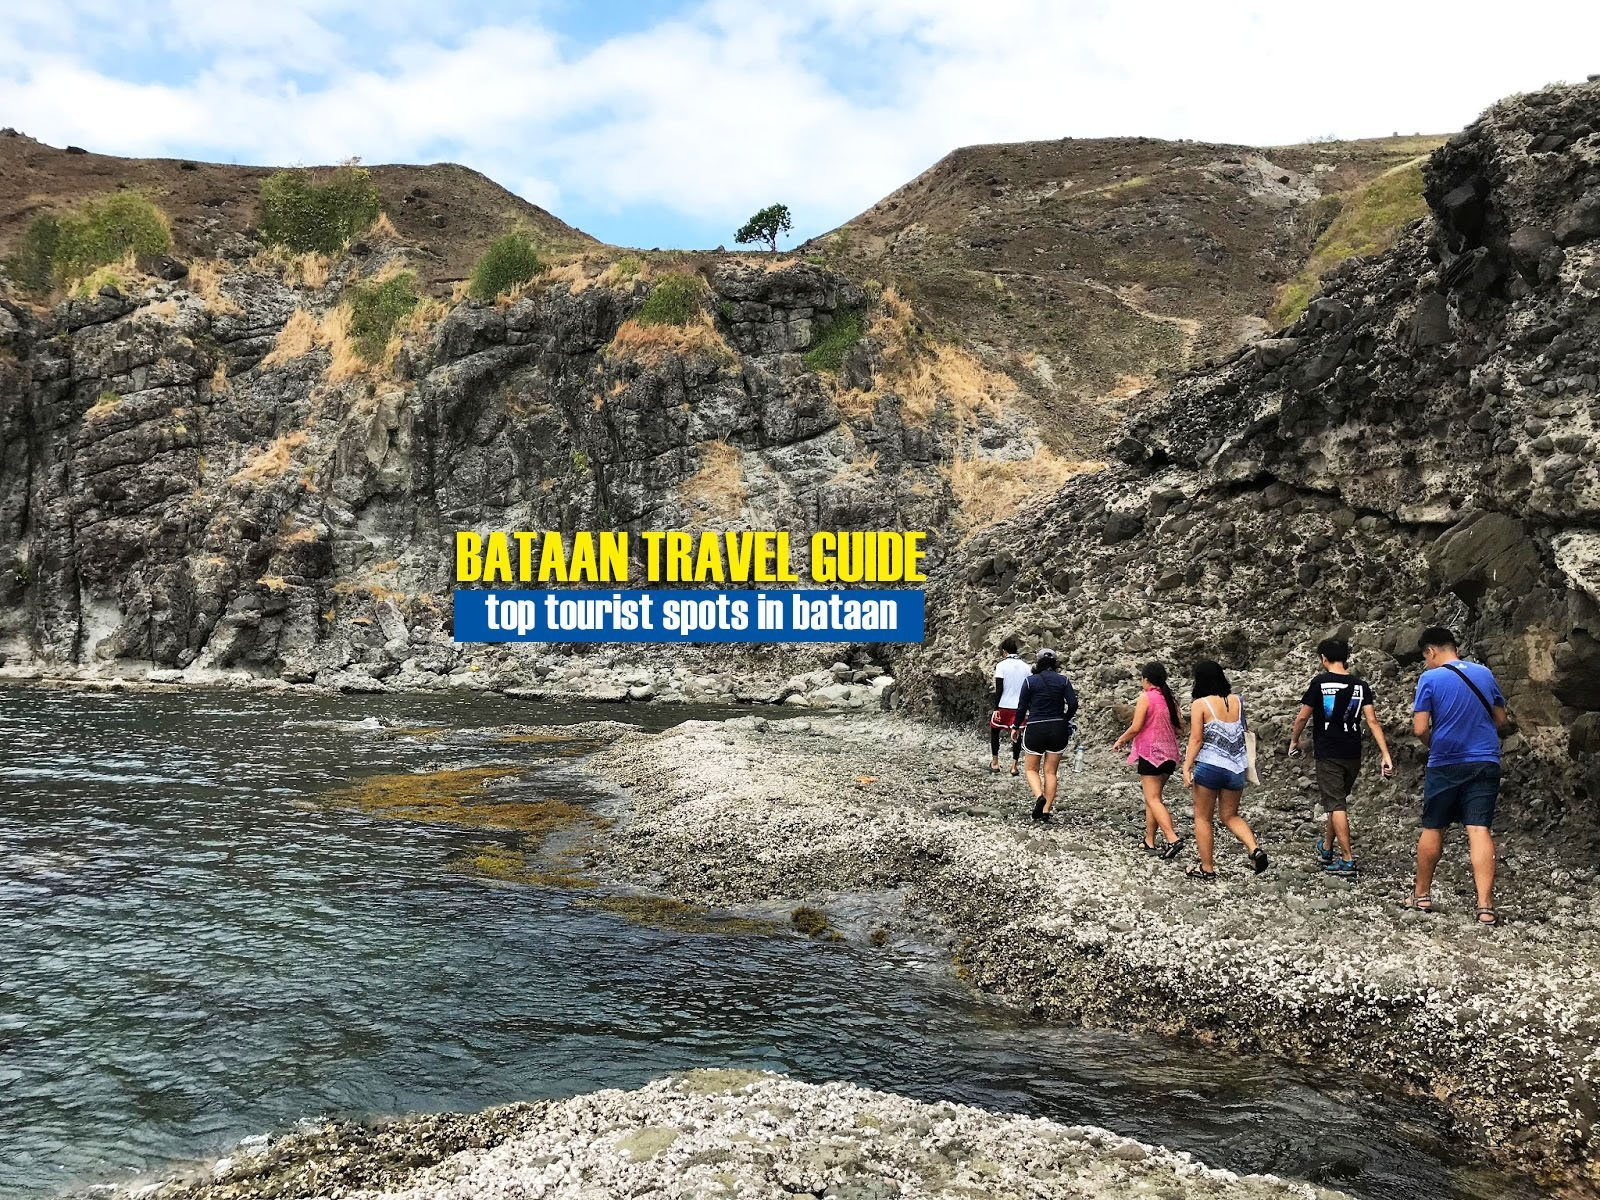 Visiting the Five Fingers Cove of Mariveles, Bataan